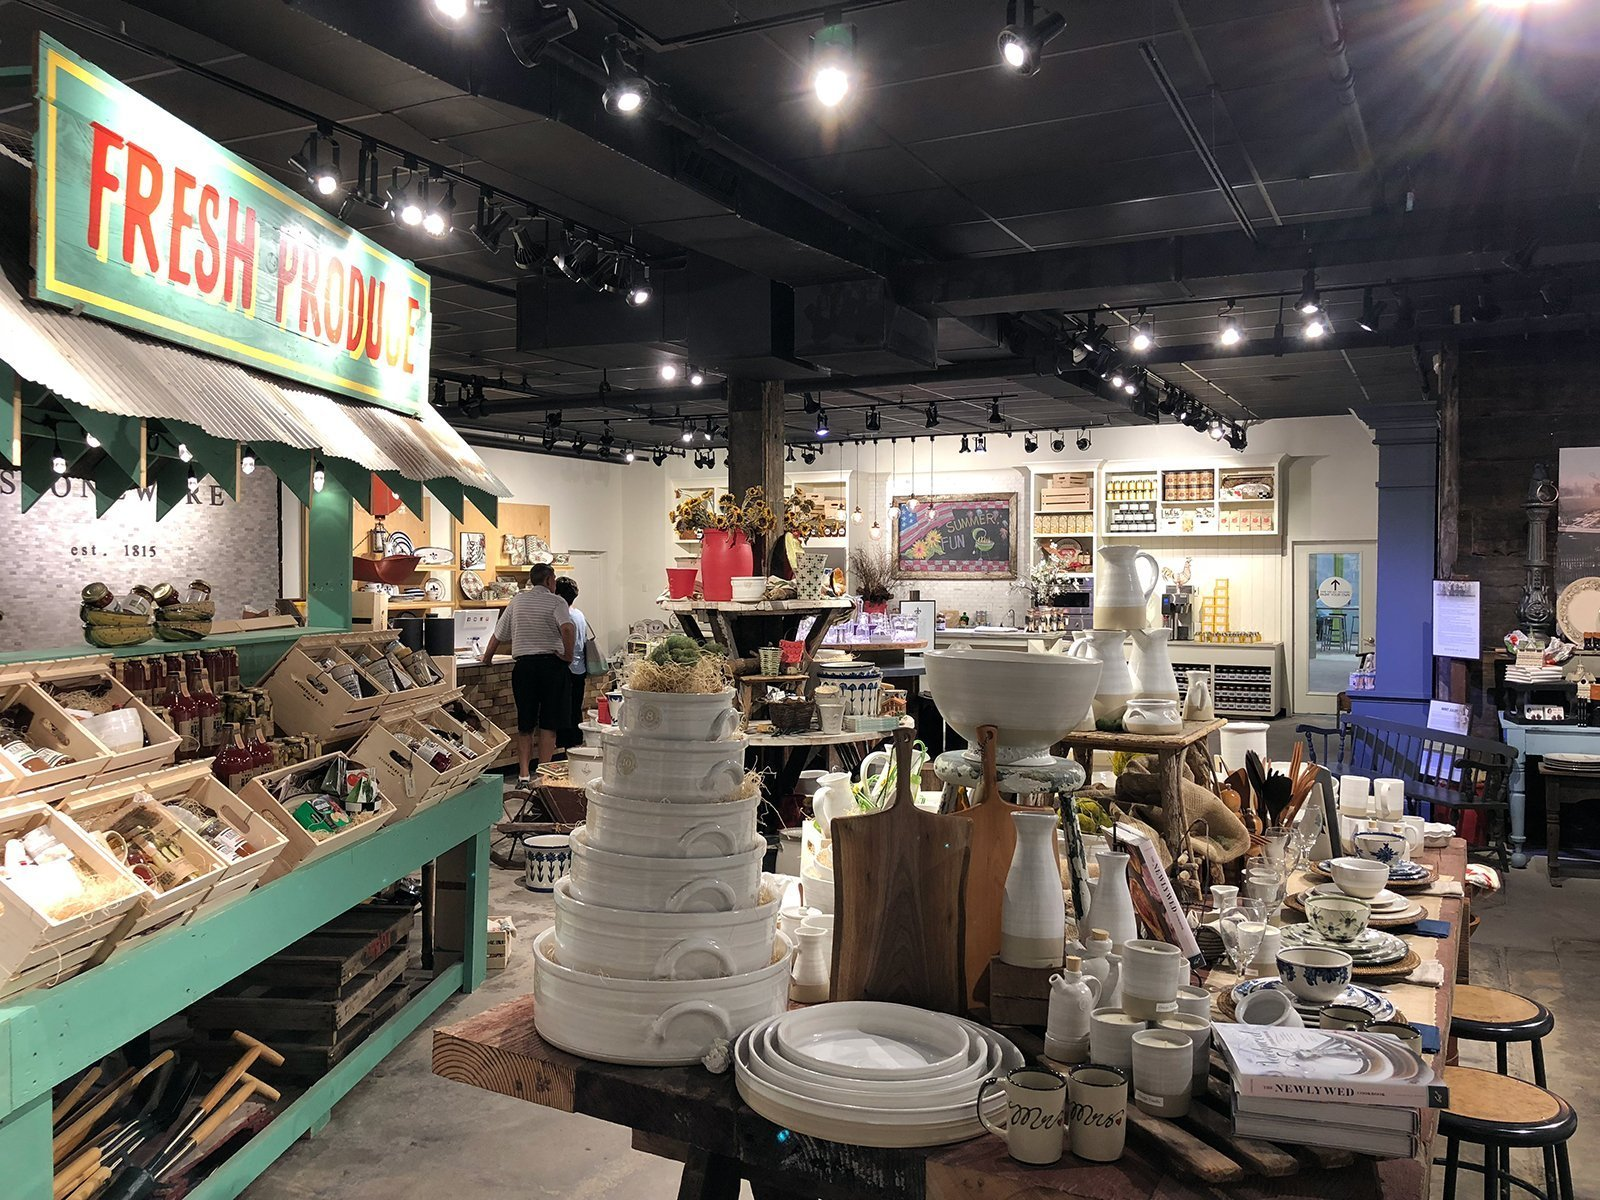 Stoneware & Co. in Louisville, KY by Jets Like Taxis